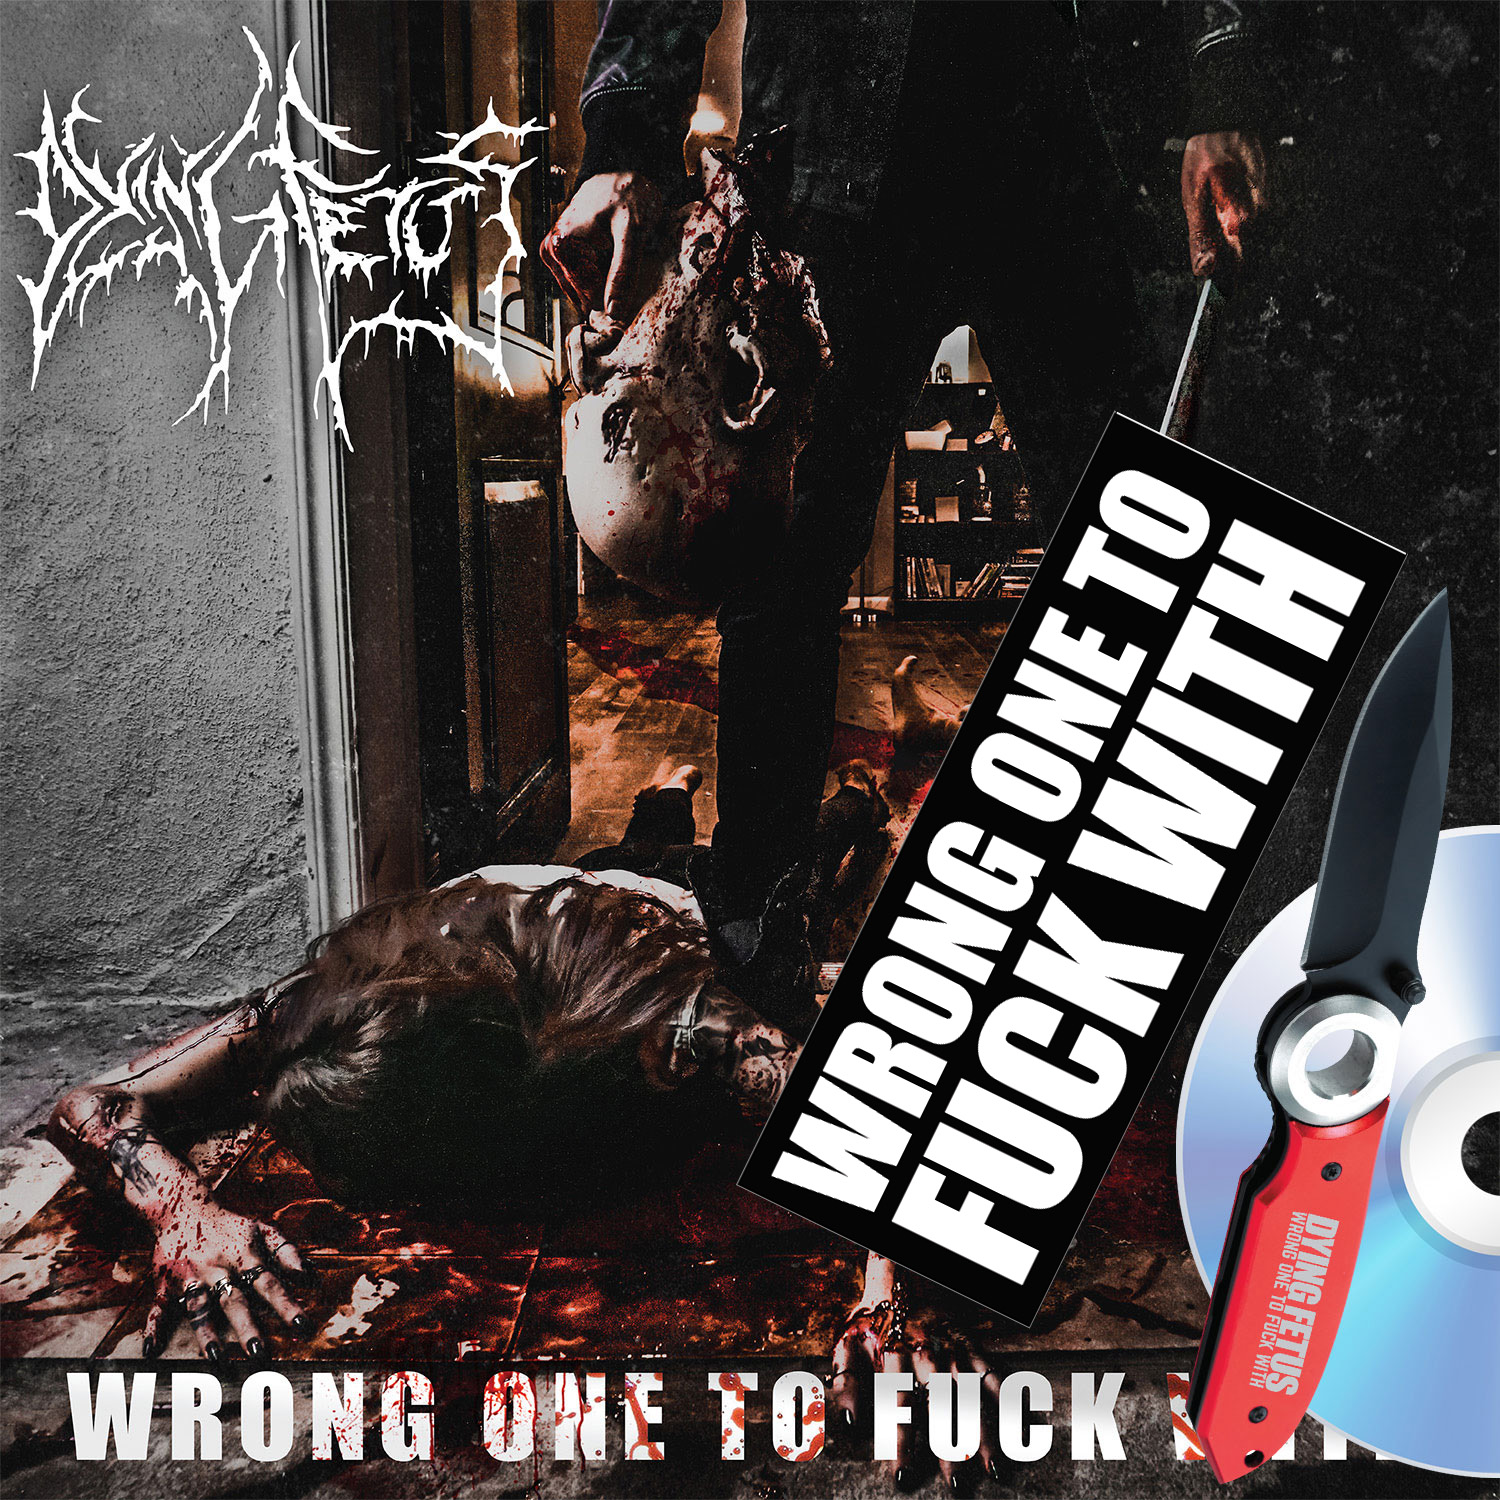 Wrong One To Fuck With Knife + Bumper Sticker + CD Deluxe Bundle